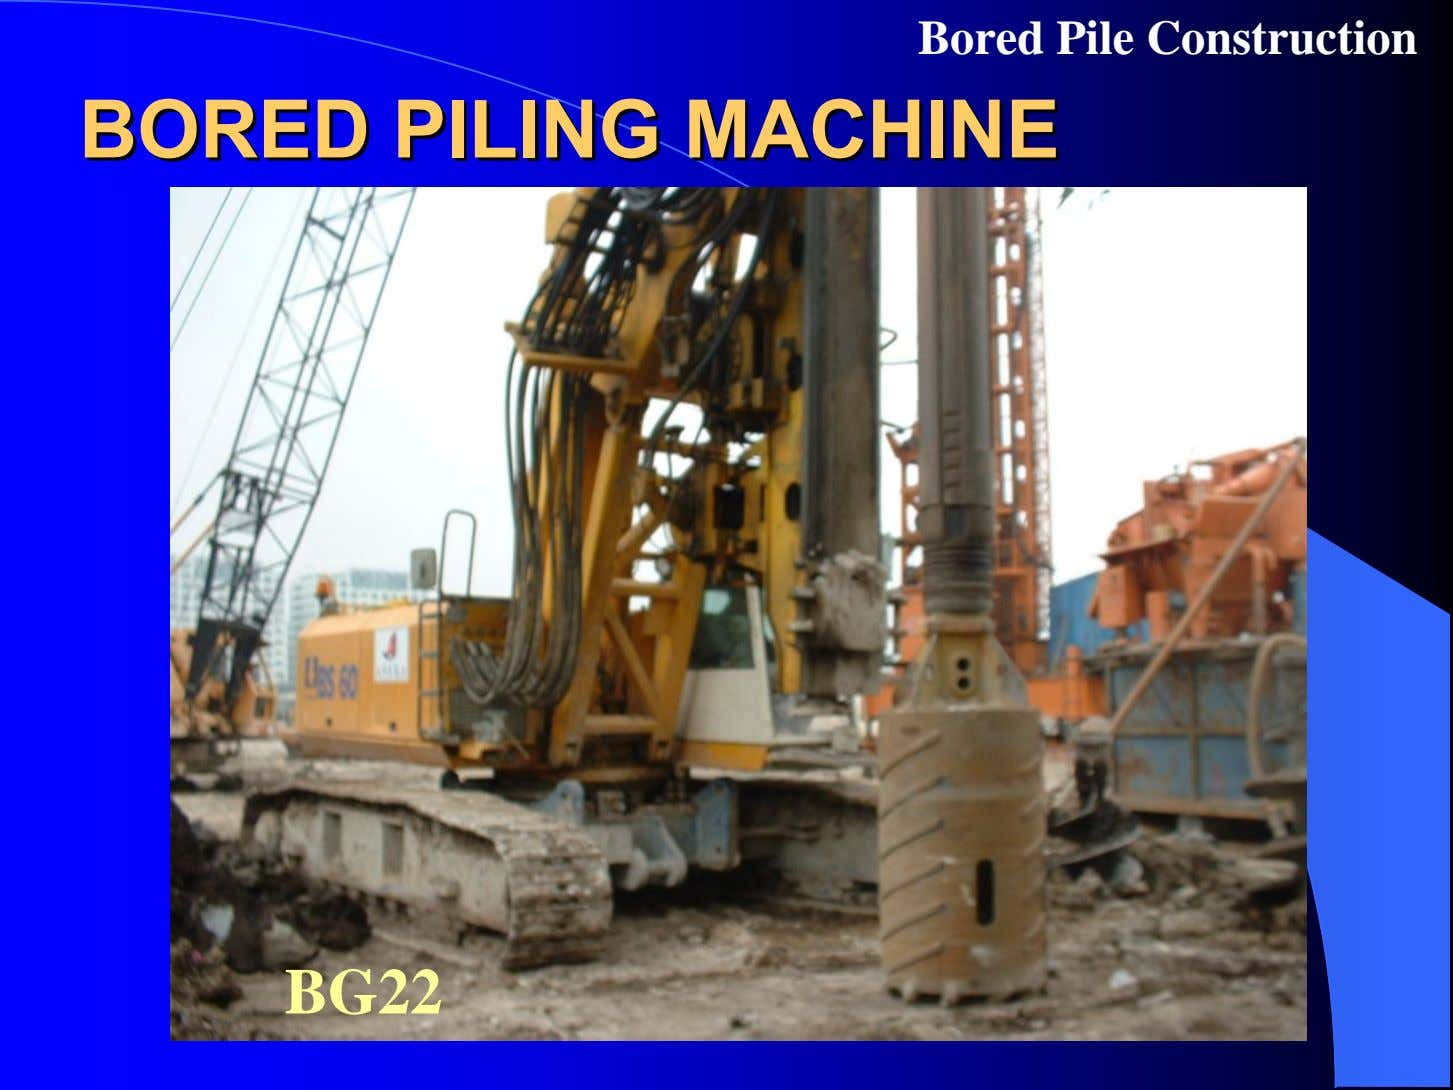 Bored Pile Construction BOREDBORED PILINGPILING MACHINEMACHINE BG22